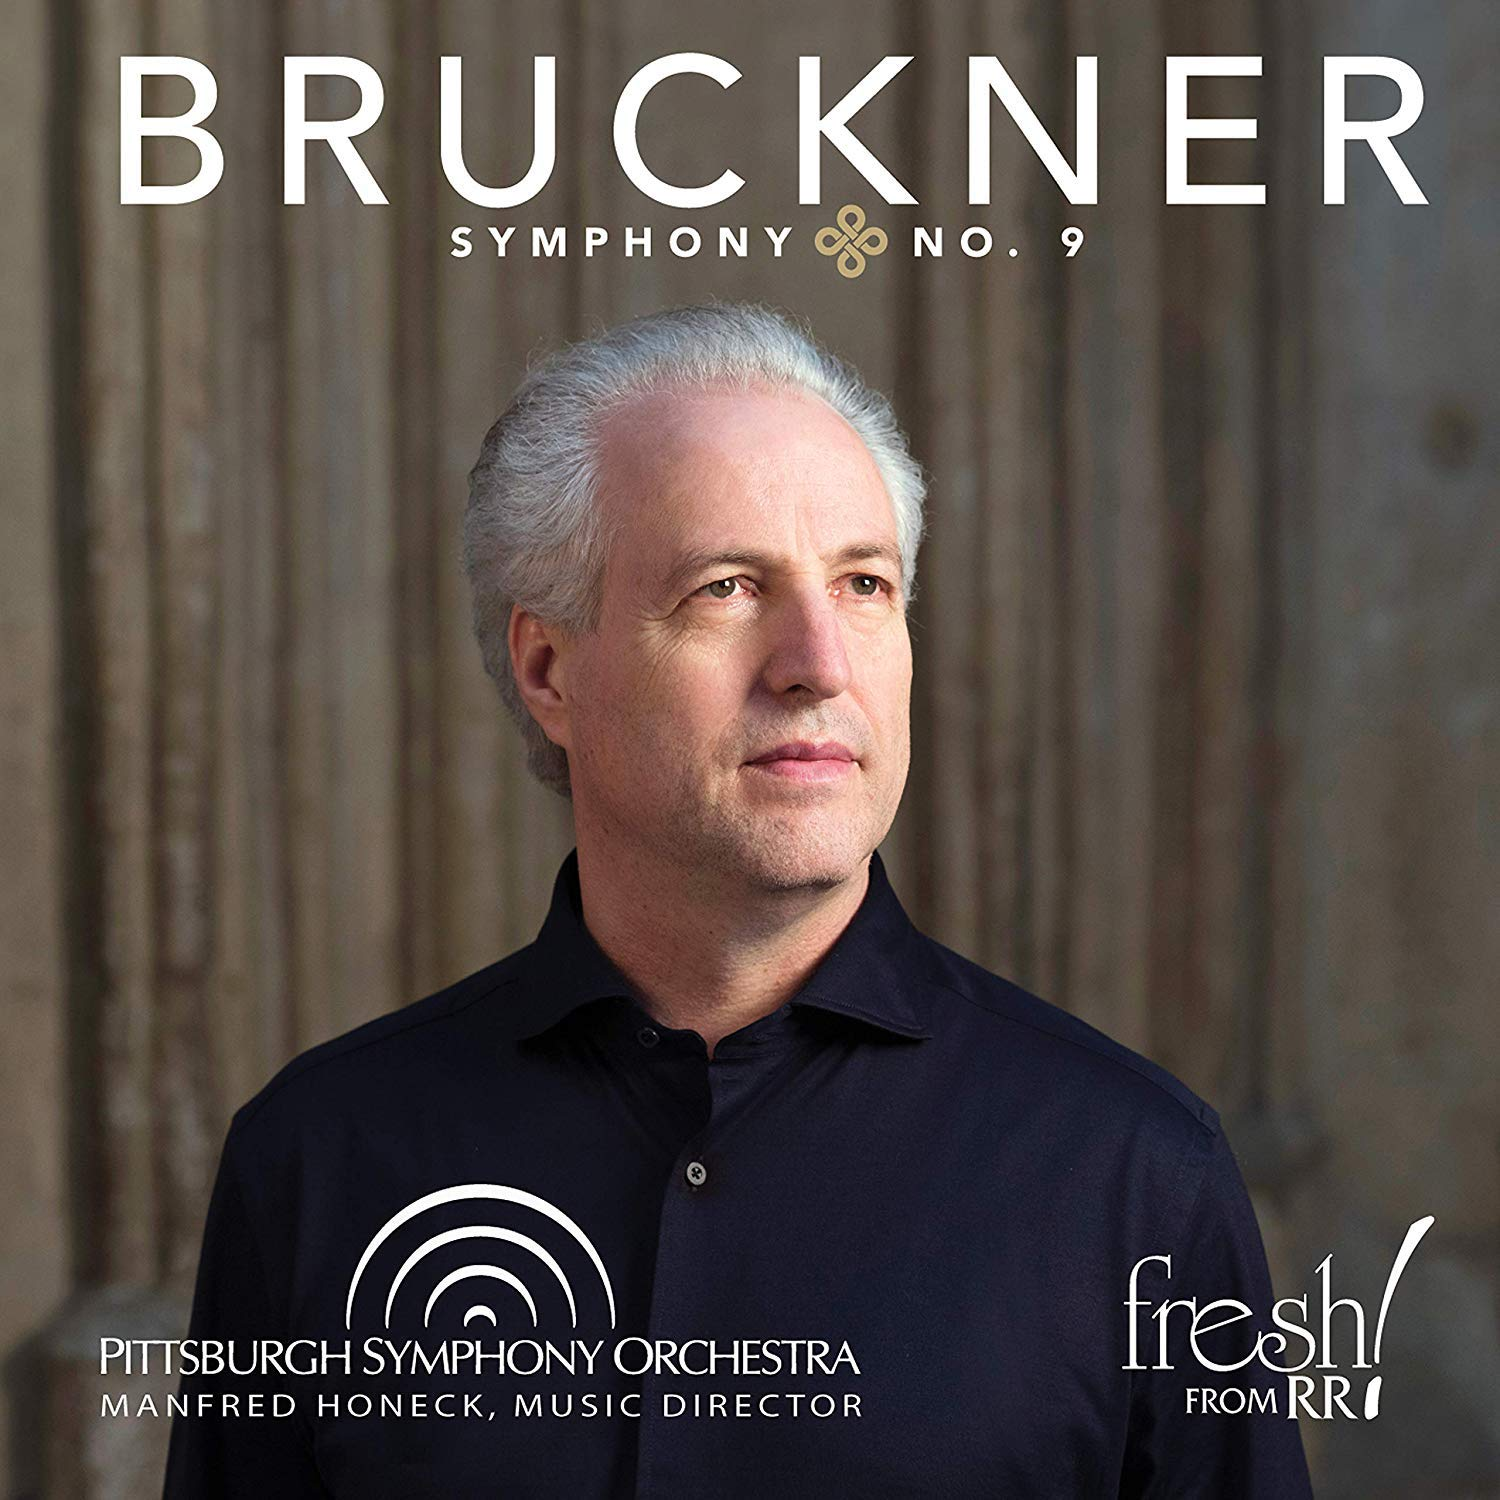 Bruckner: Symphony No. 9 in D Minor by Reference Recordings